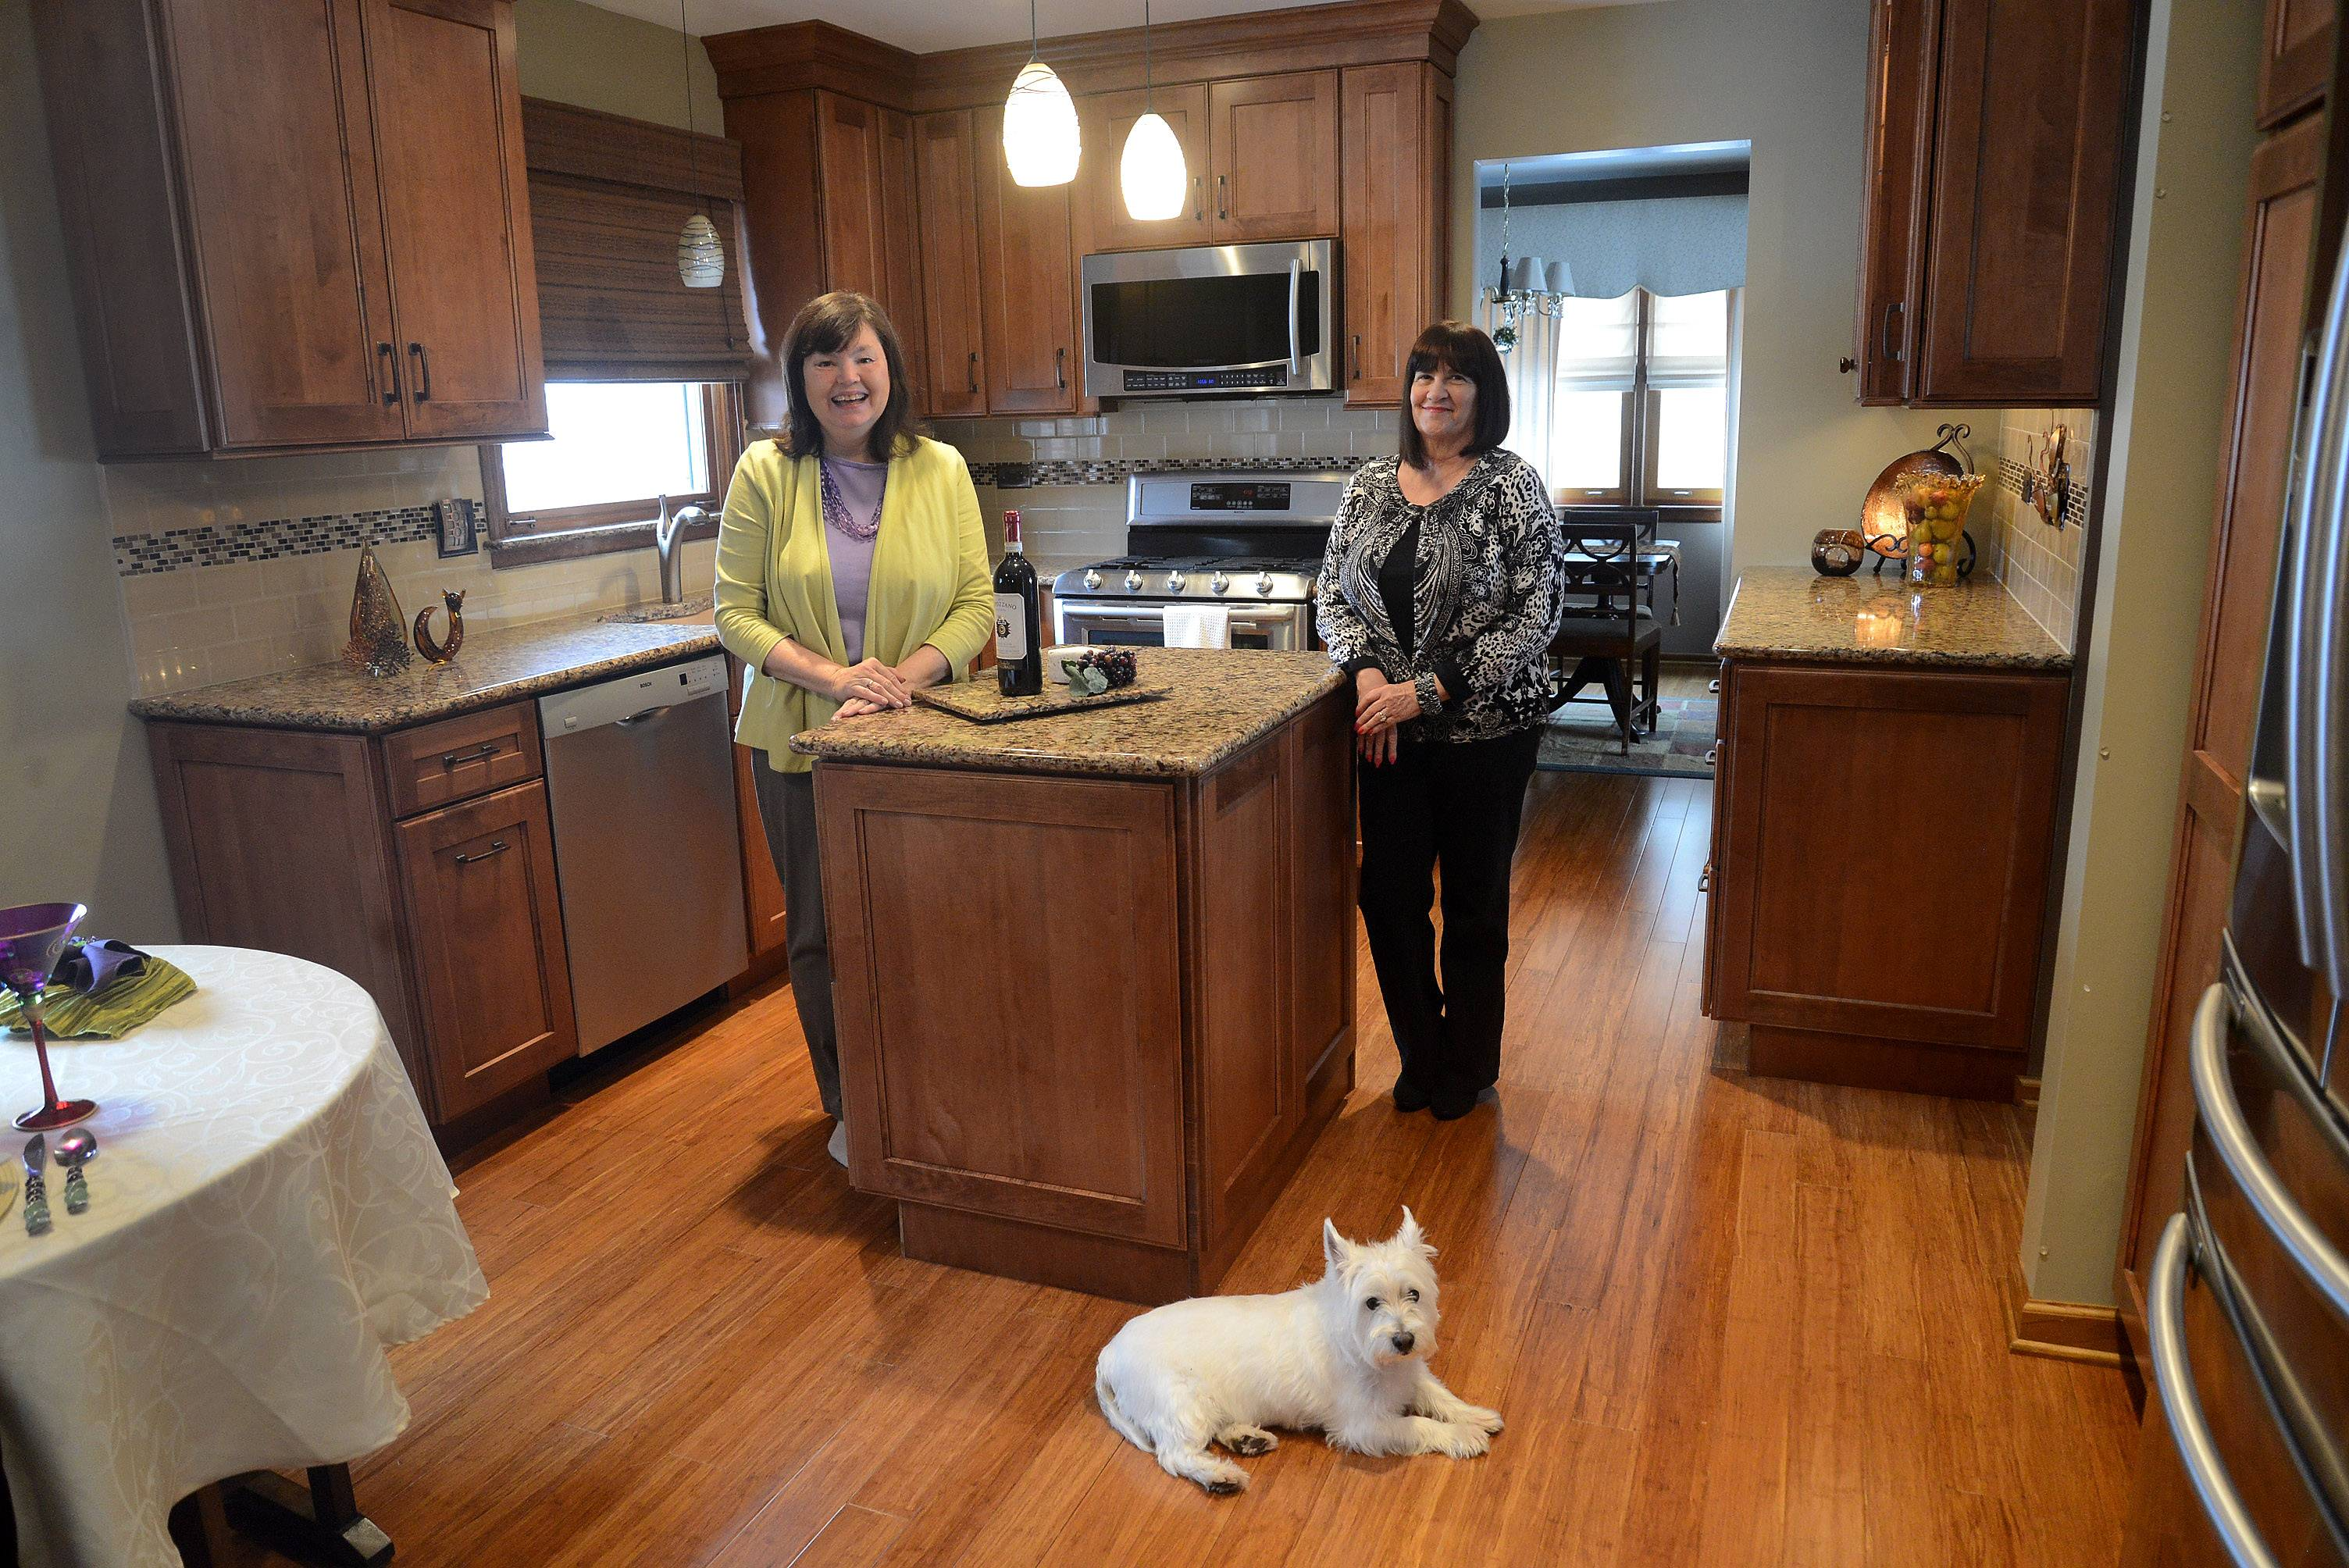 Designer Linda Navara, right, and homeowner Maureen Willenborg in the newly redesigned kitchen in Arlington Heights.